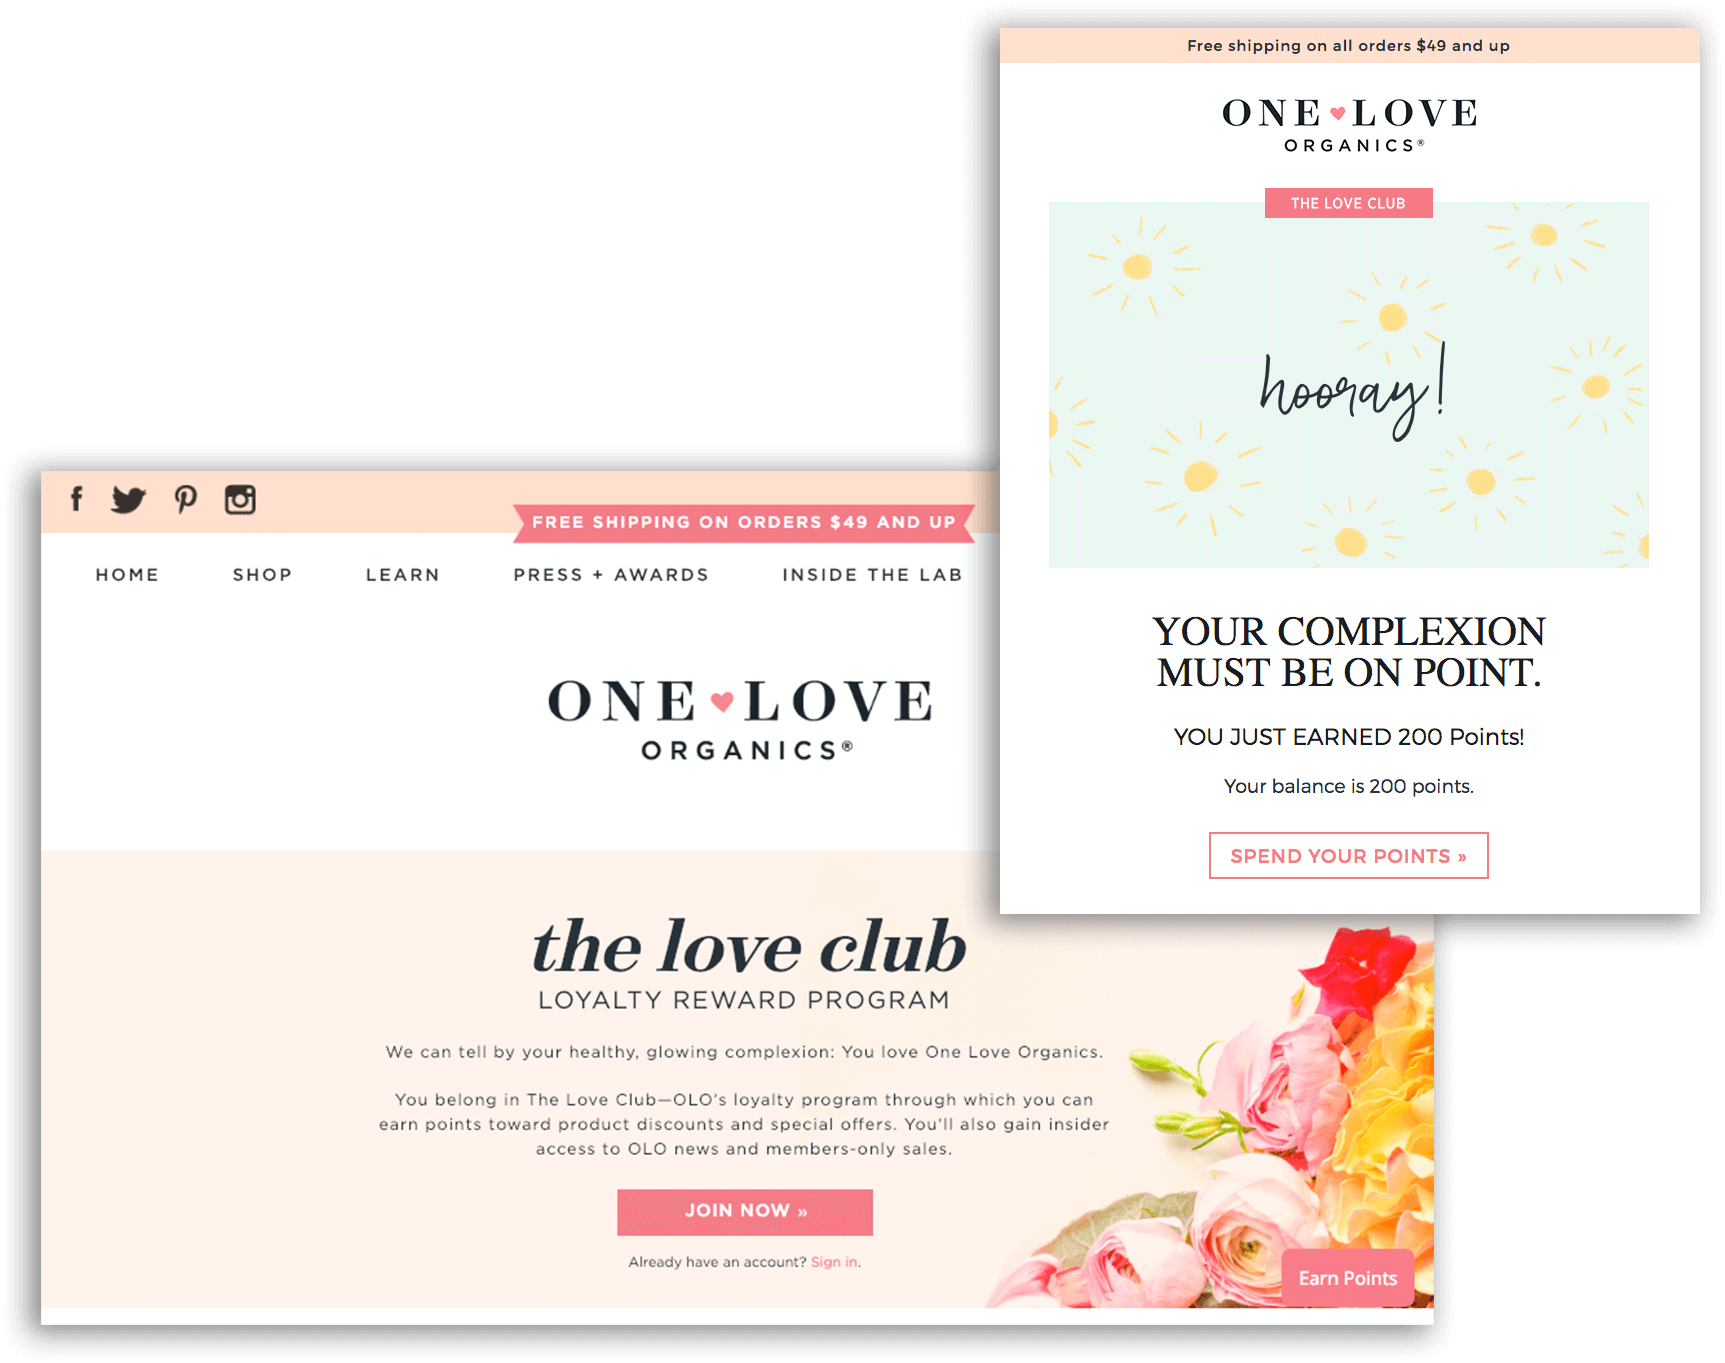 Consistent Tone of Voice - One love organics email and explainer